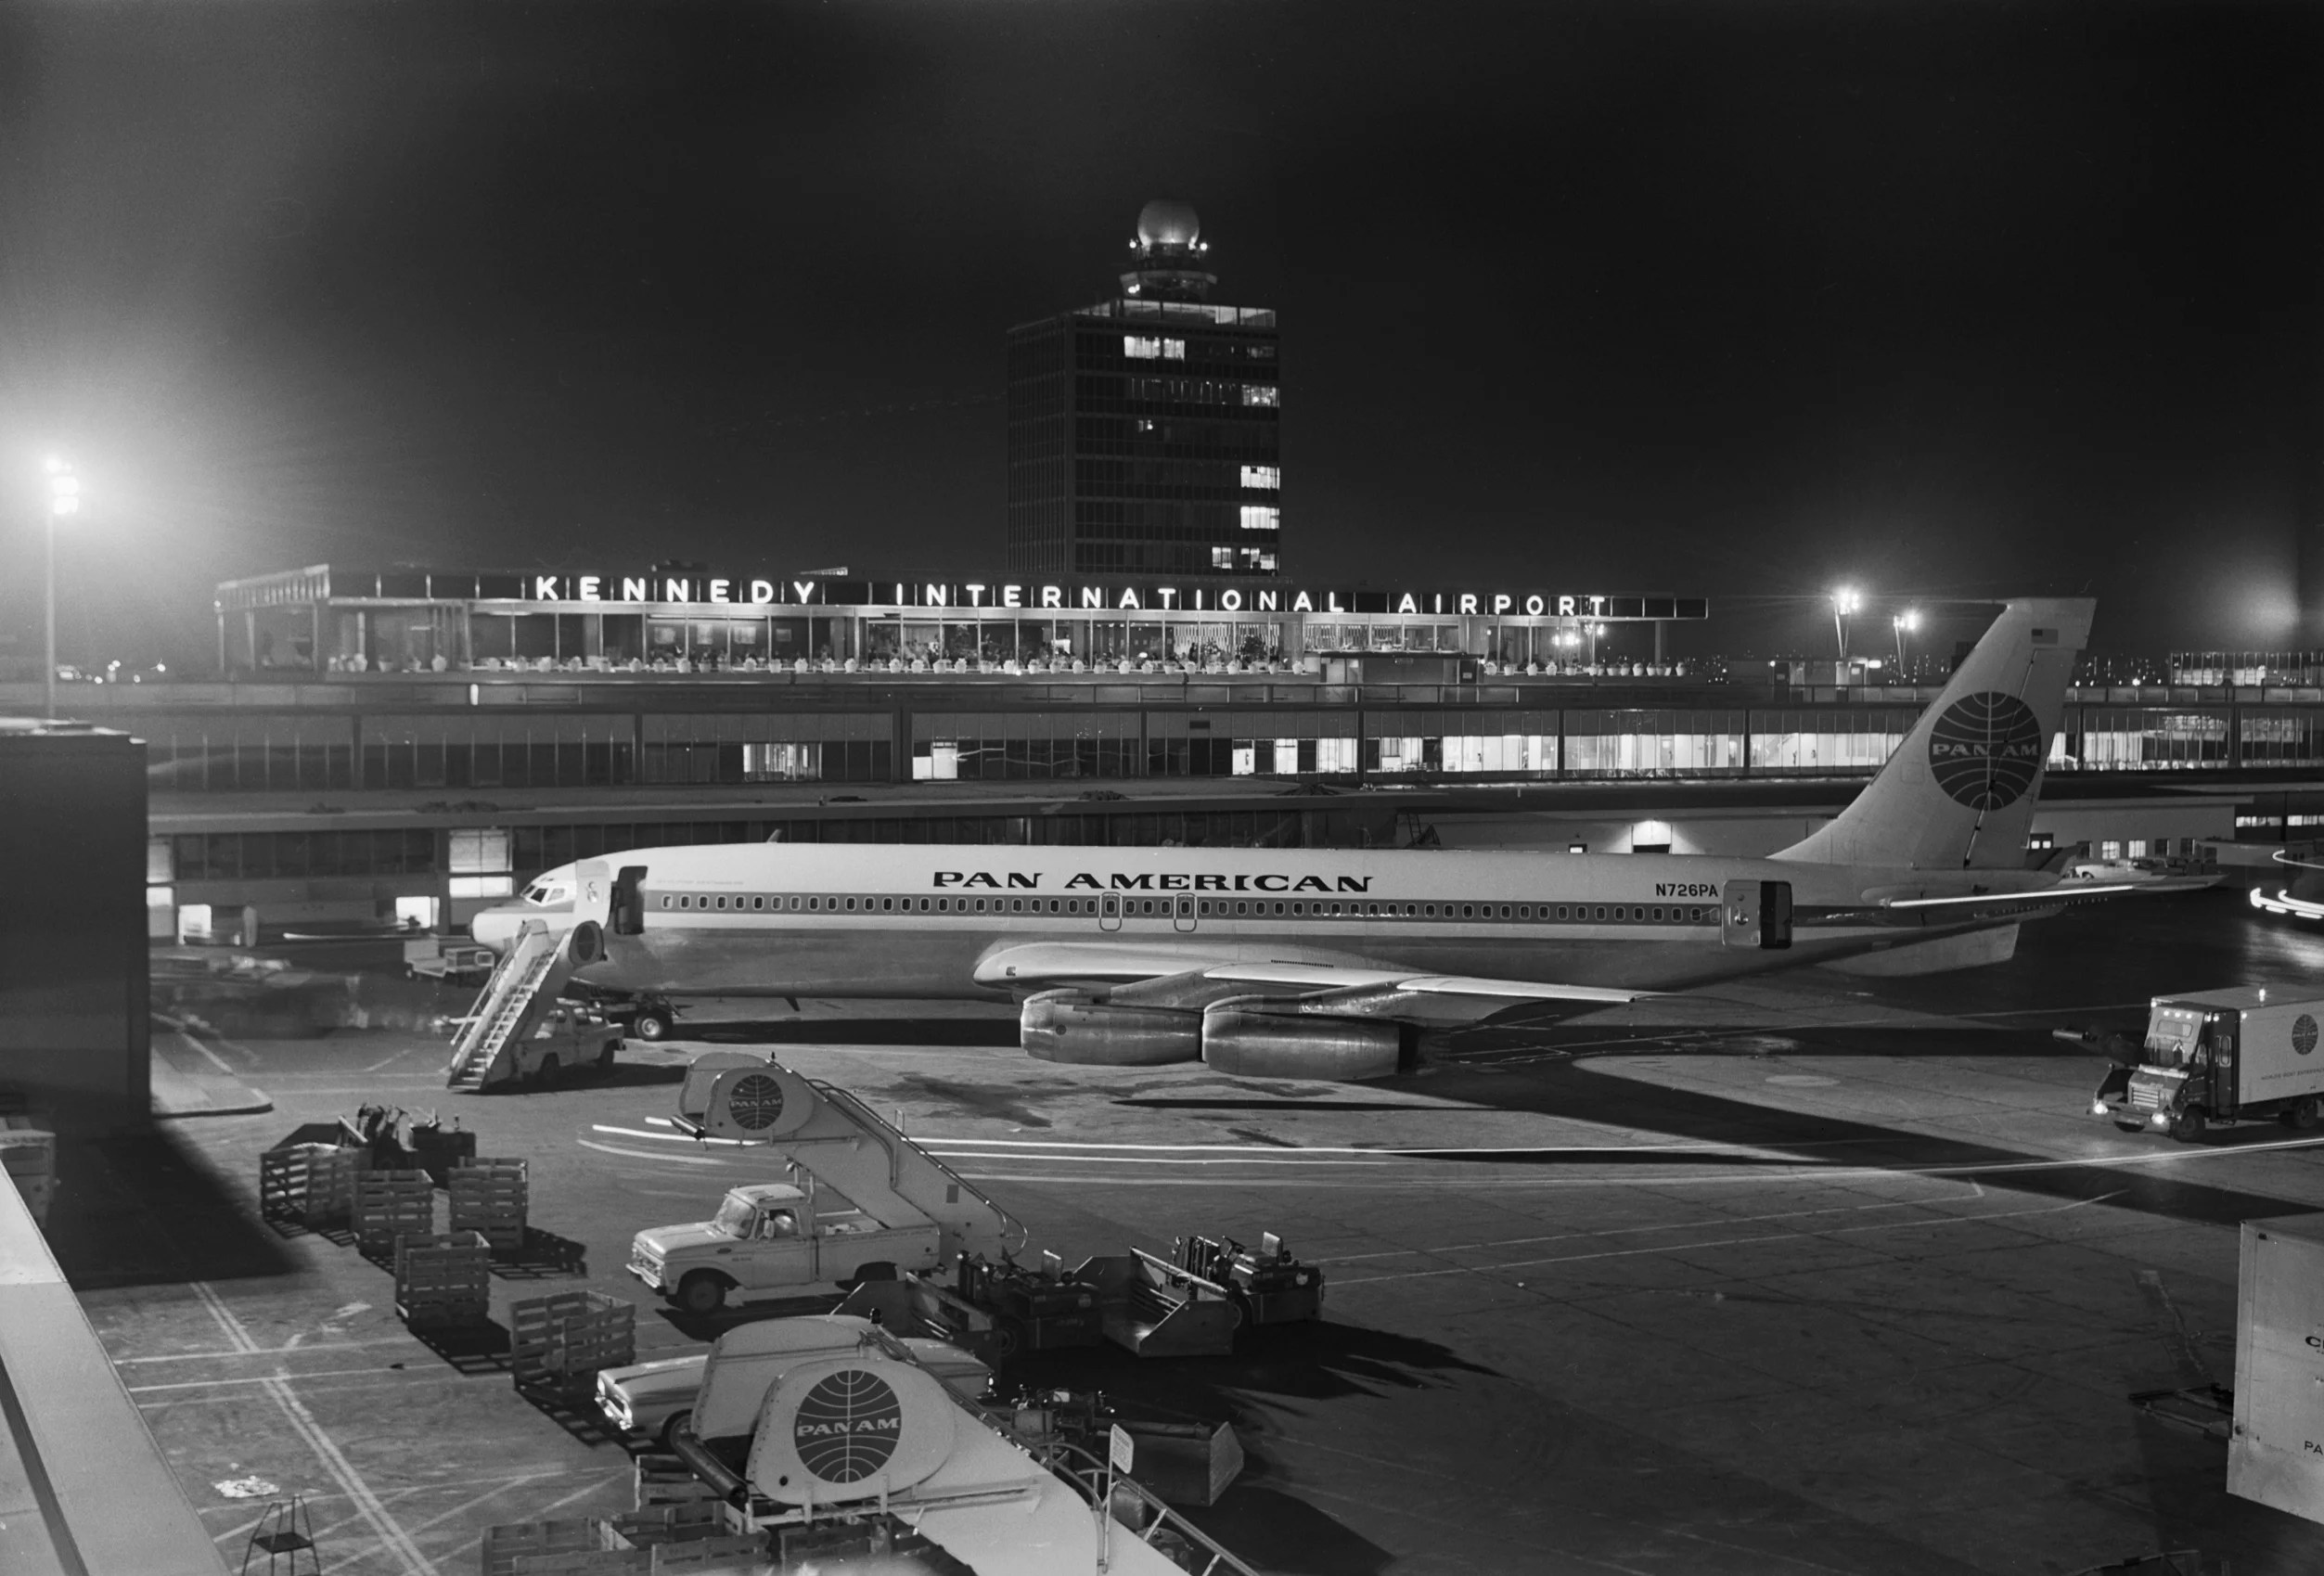 Unforgotten: The lost airlines of the U.S.